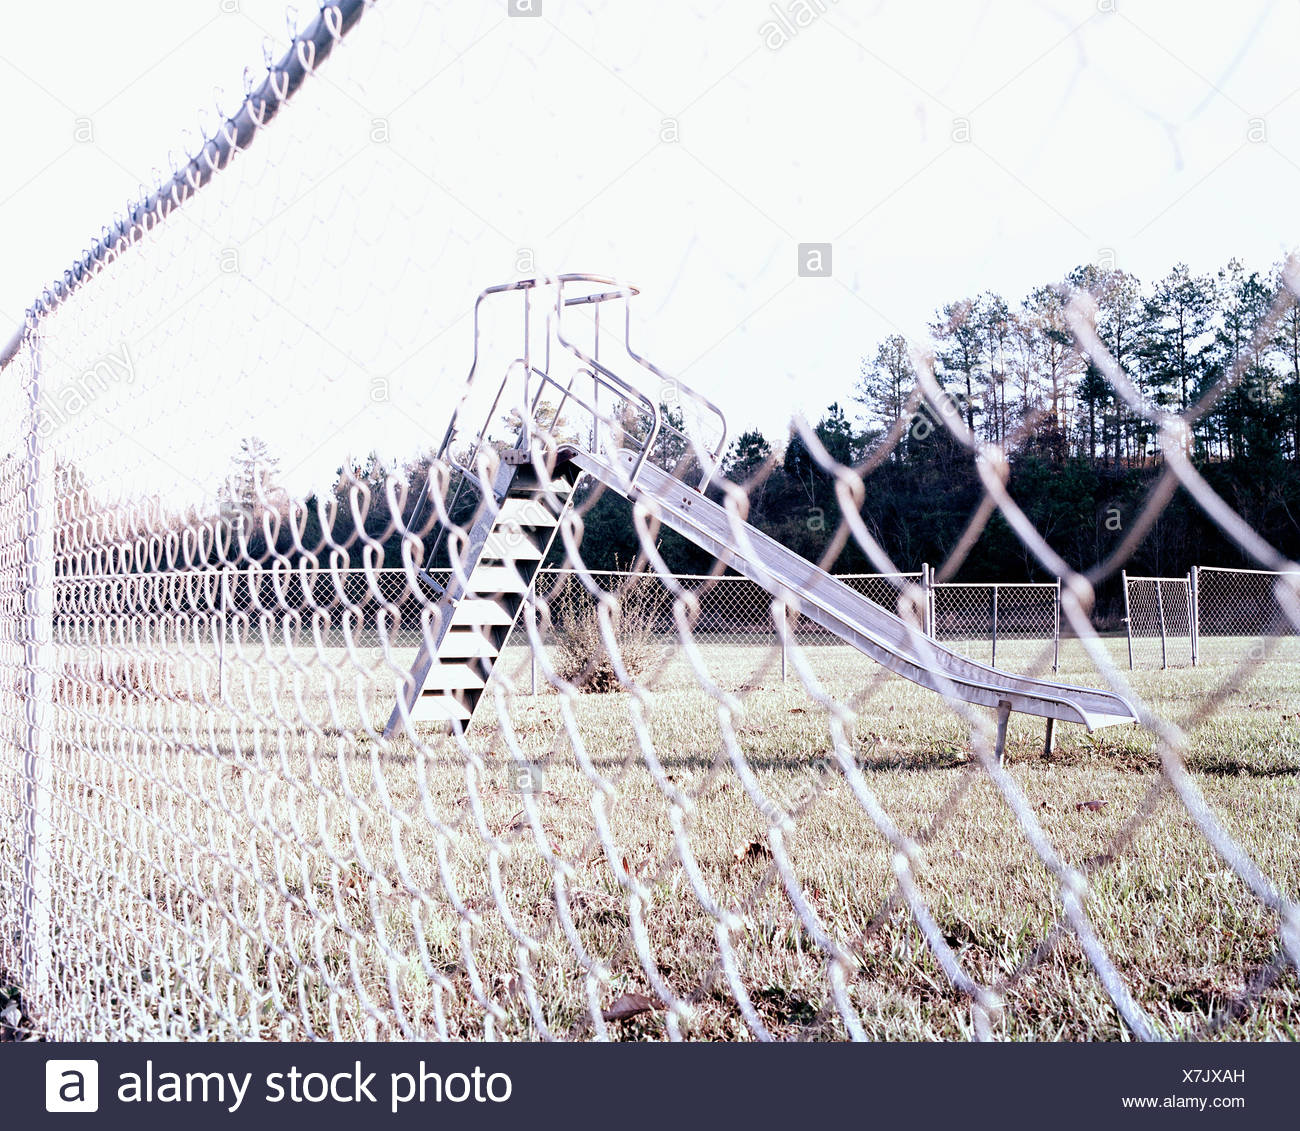 Slide Playground Nobody Stockfotos & Slide Playground Nobody Bilder ...